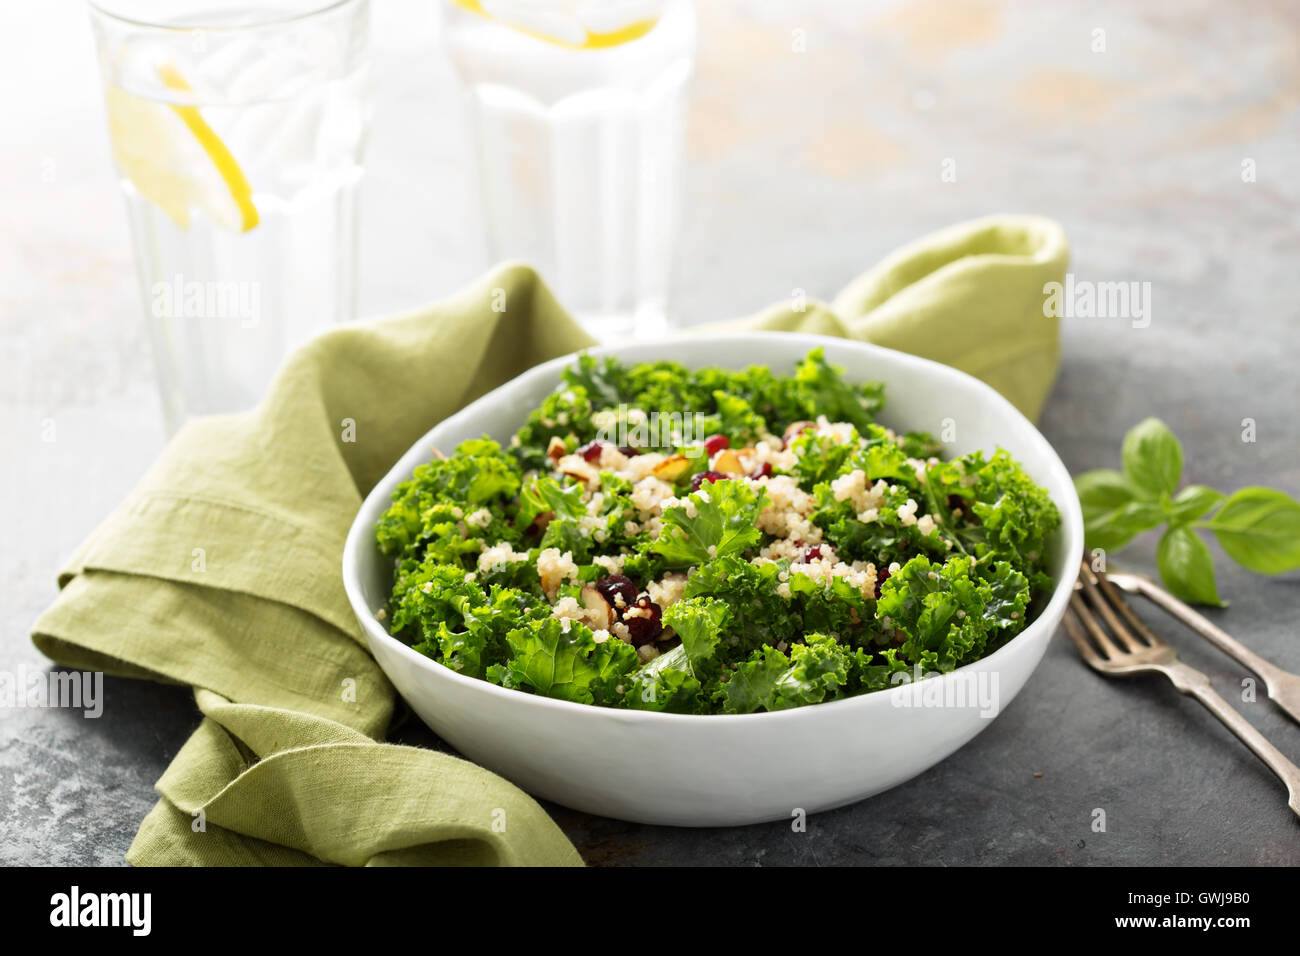 Fresh healthy salad with kale and quinoa - Stock Image